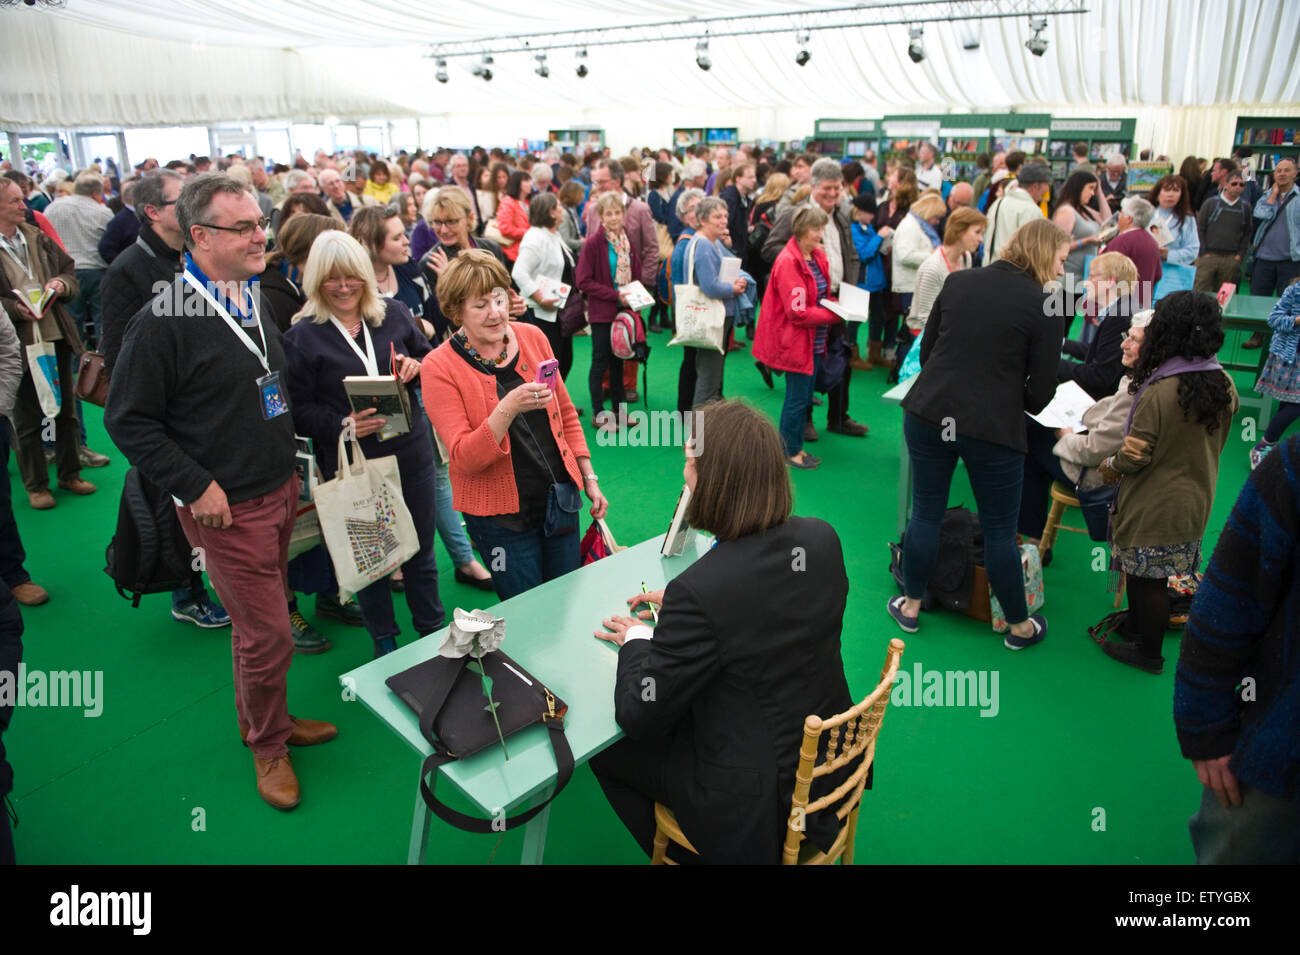 Authors surrounded by crowds of fans book signing in bookshop at Hay Festival 2015 - Stock Image